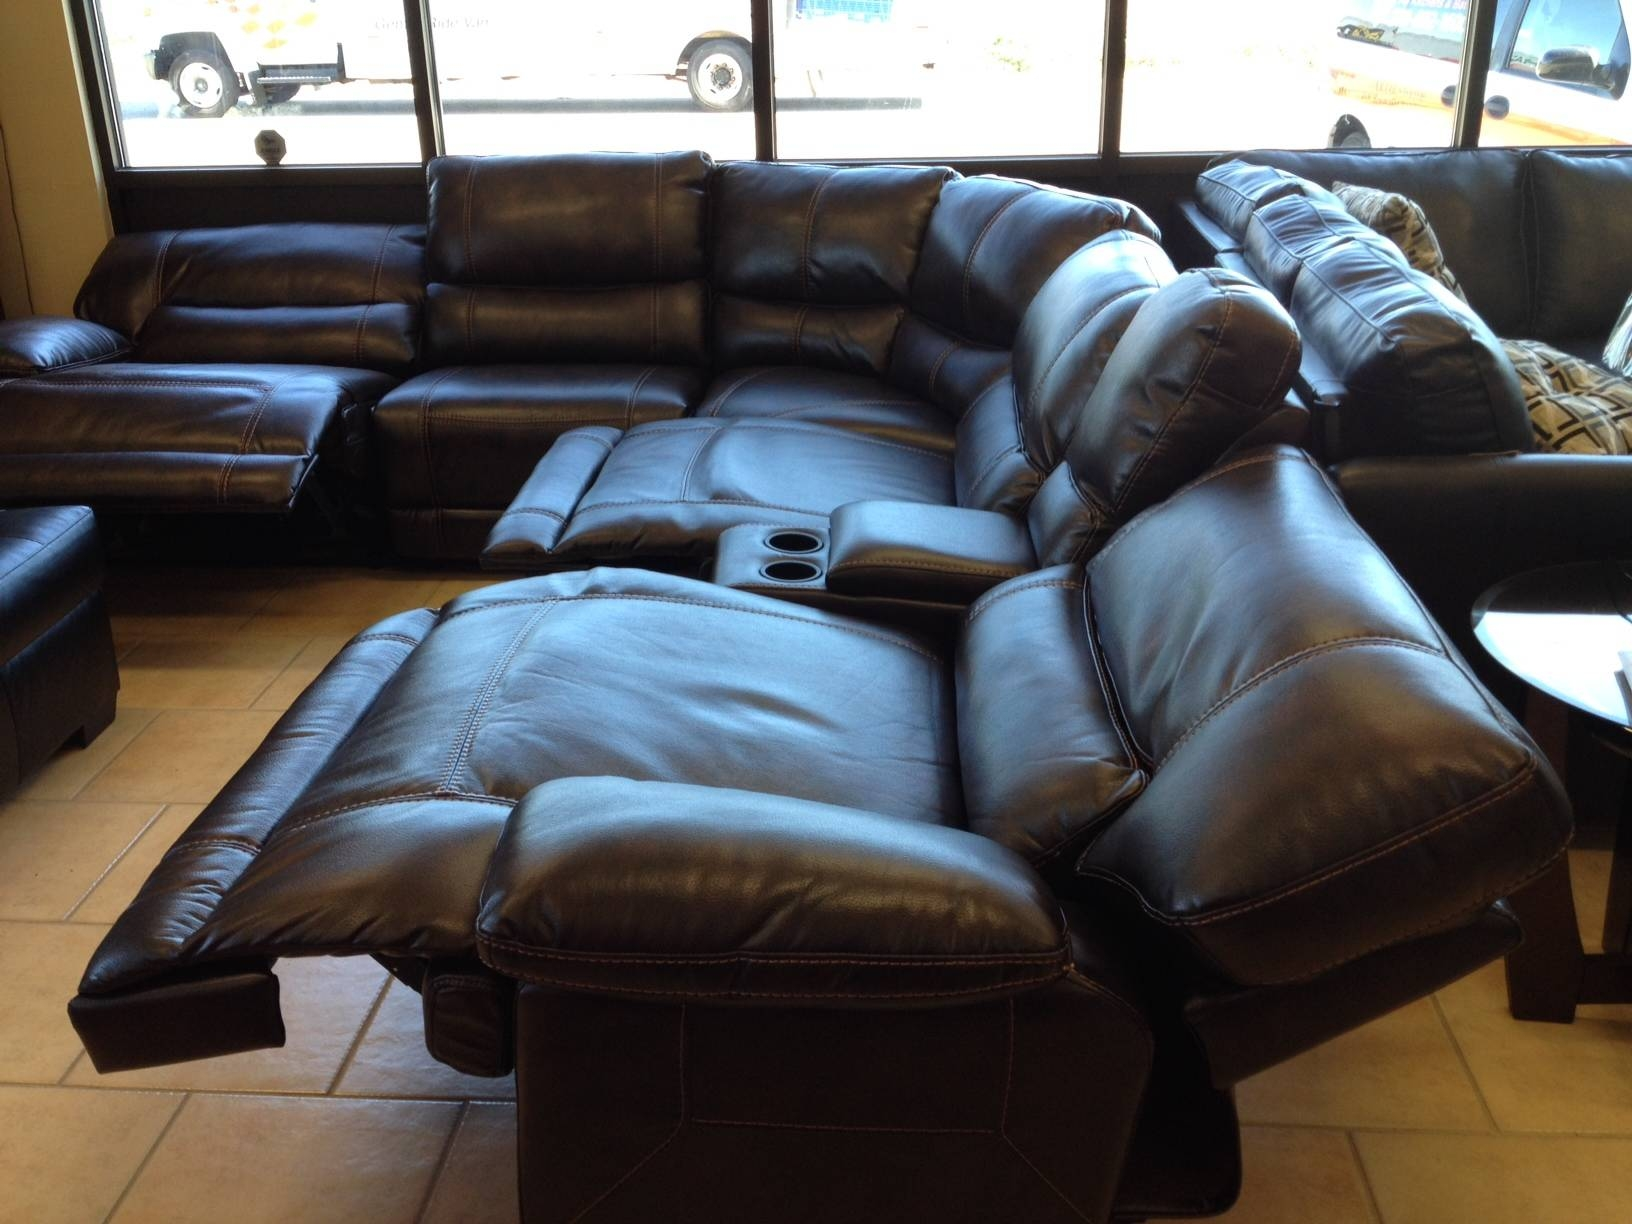 Furniture: Cheap Recliner | Oversized Recliner | Simmons Recliners with regard to Sectional Sofas With Electric Recliners (Image 8 of 30)